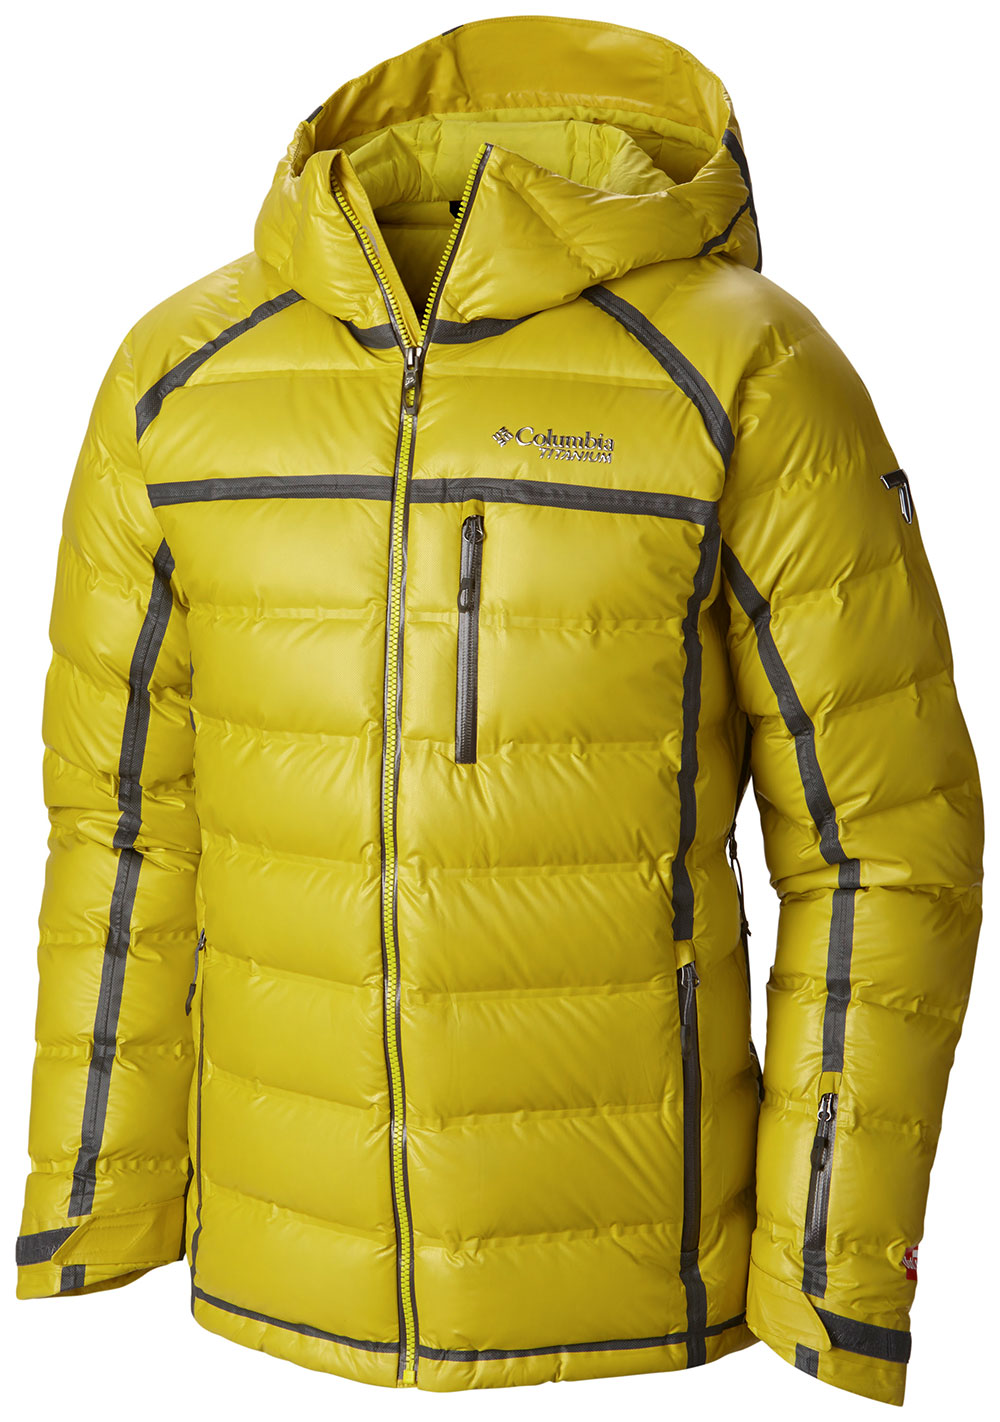 Columbia-Sportswear-Outdry-Ex-Diamond-Down-Insulated-Jacket